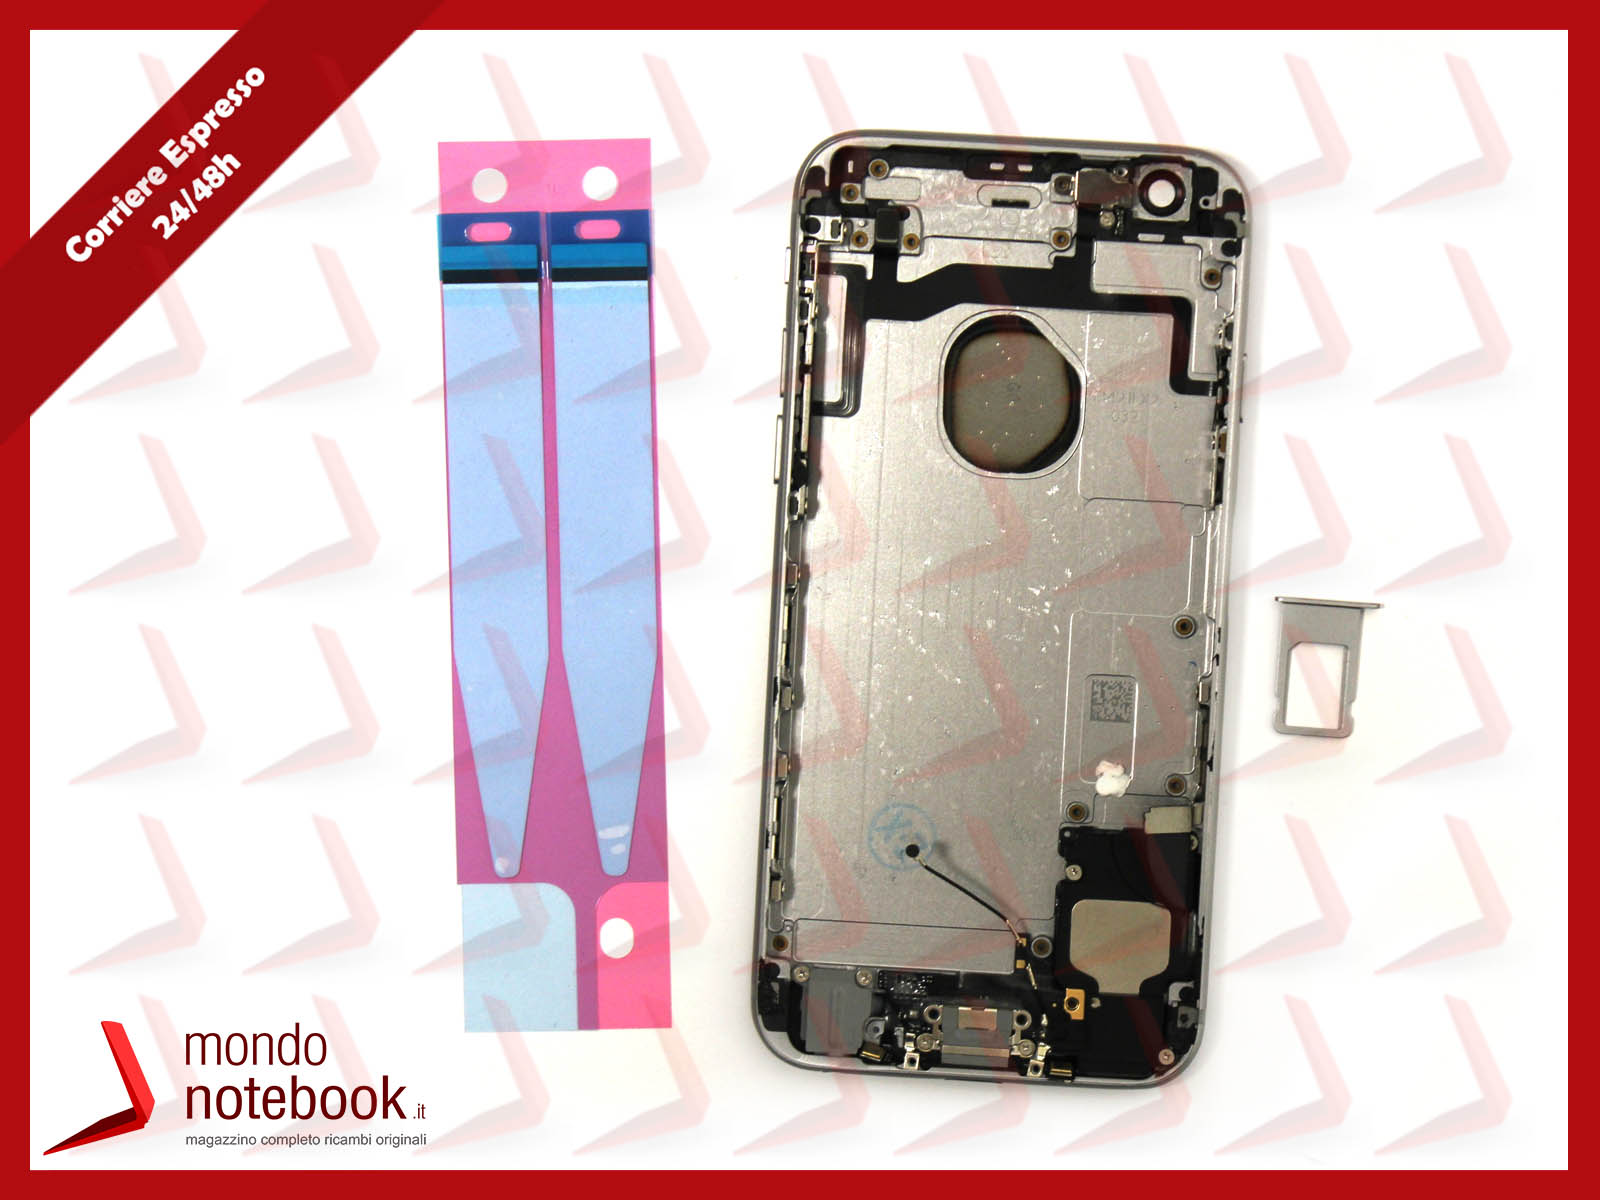 https://www.mondonotebook.it/3995/back-cover-posteriore-apple-iphone-6s-silver-completa.jpg